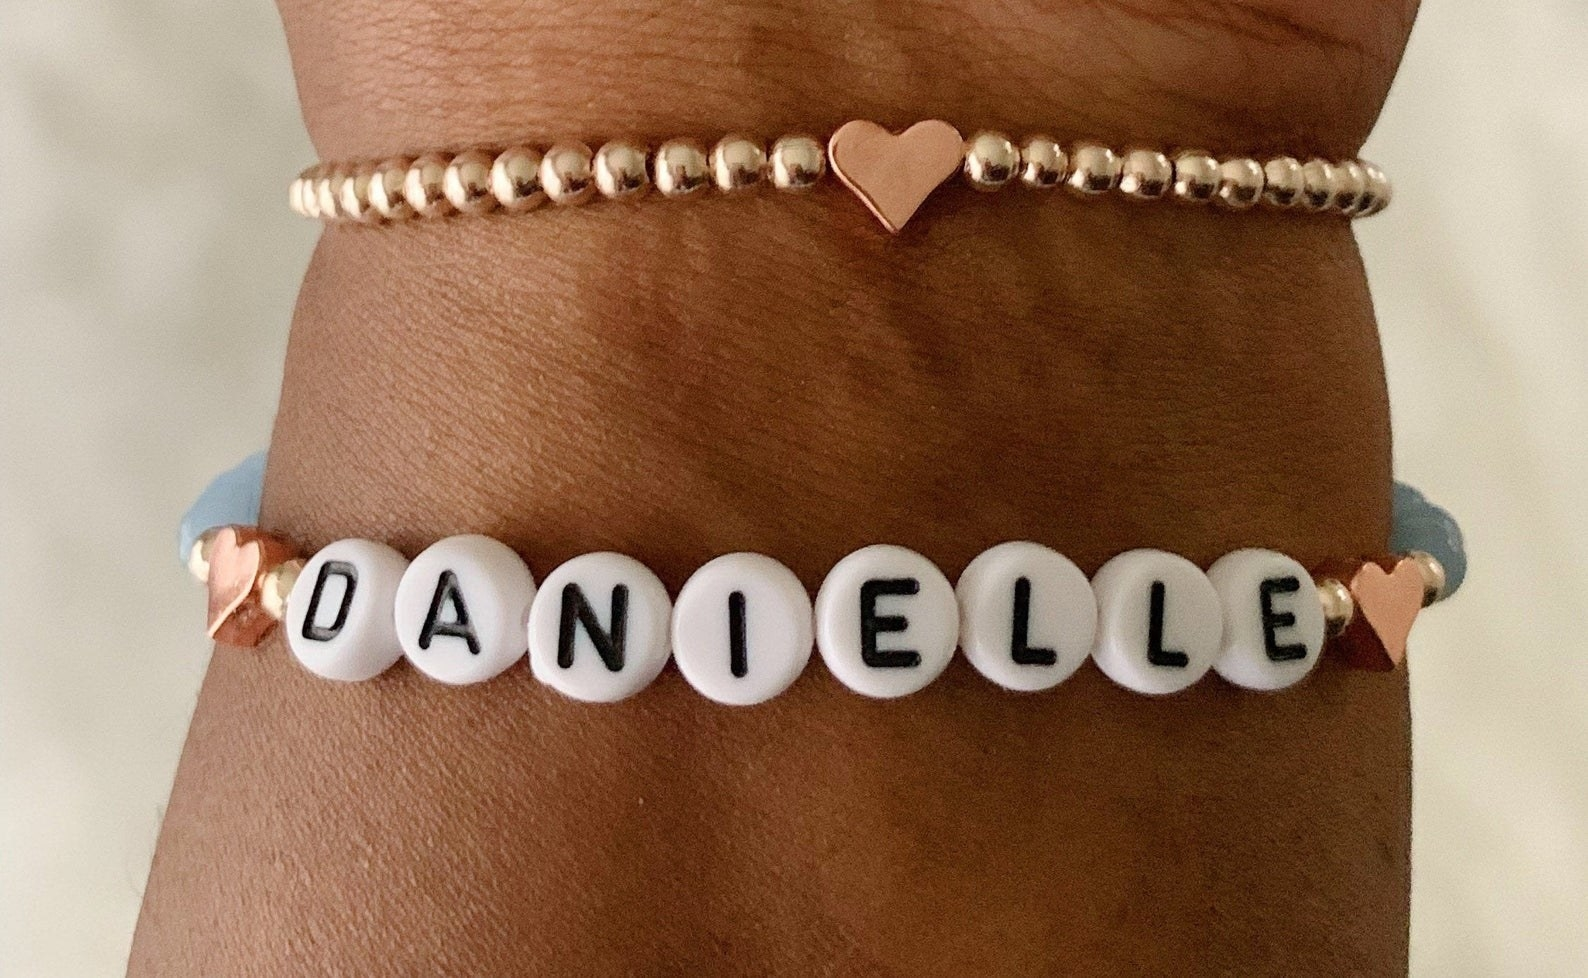 A beaded bracelet that spells out the name Danielle